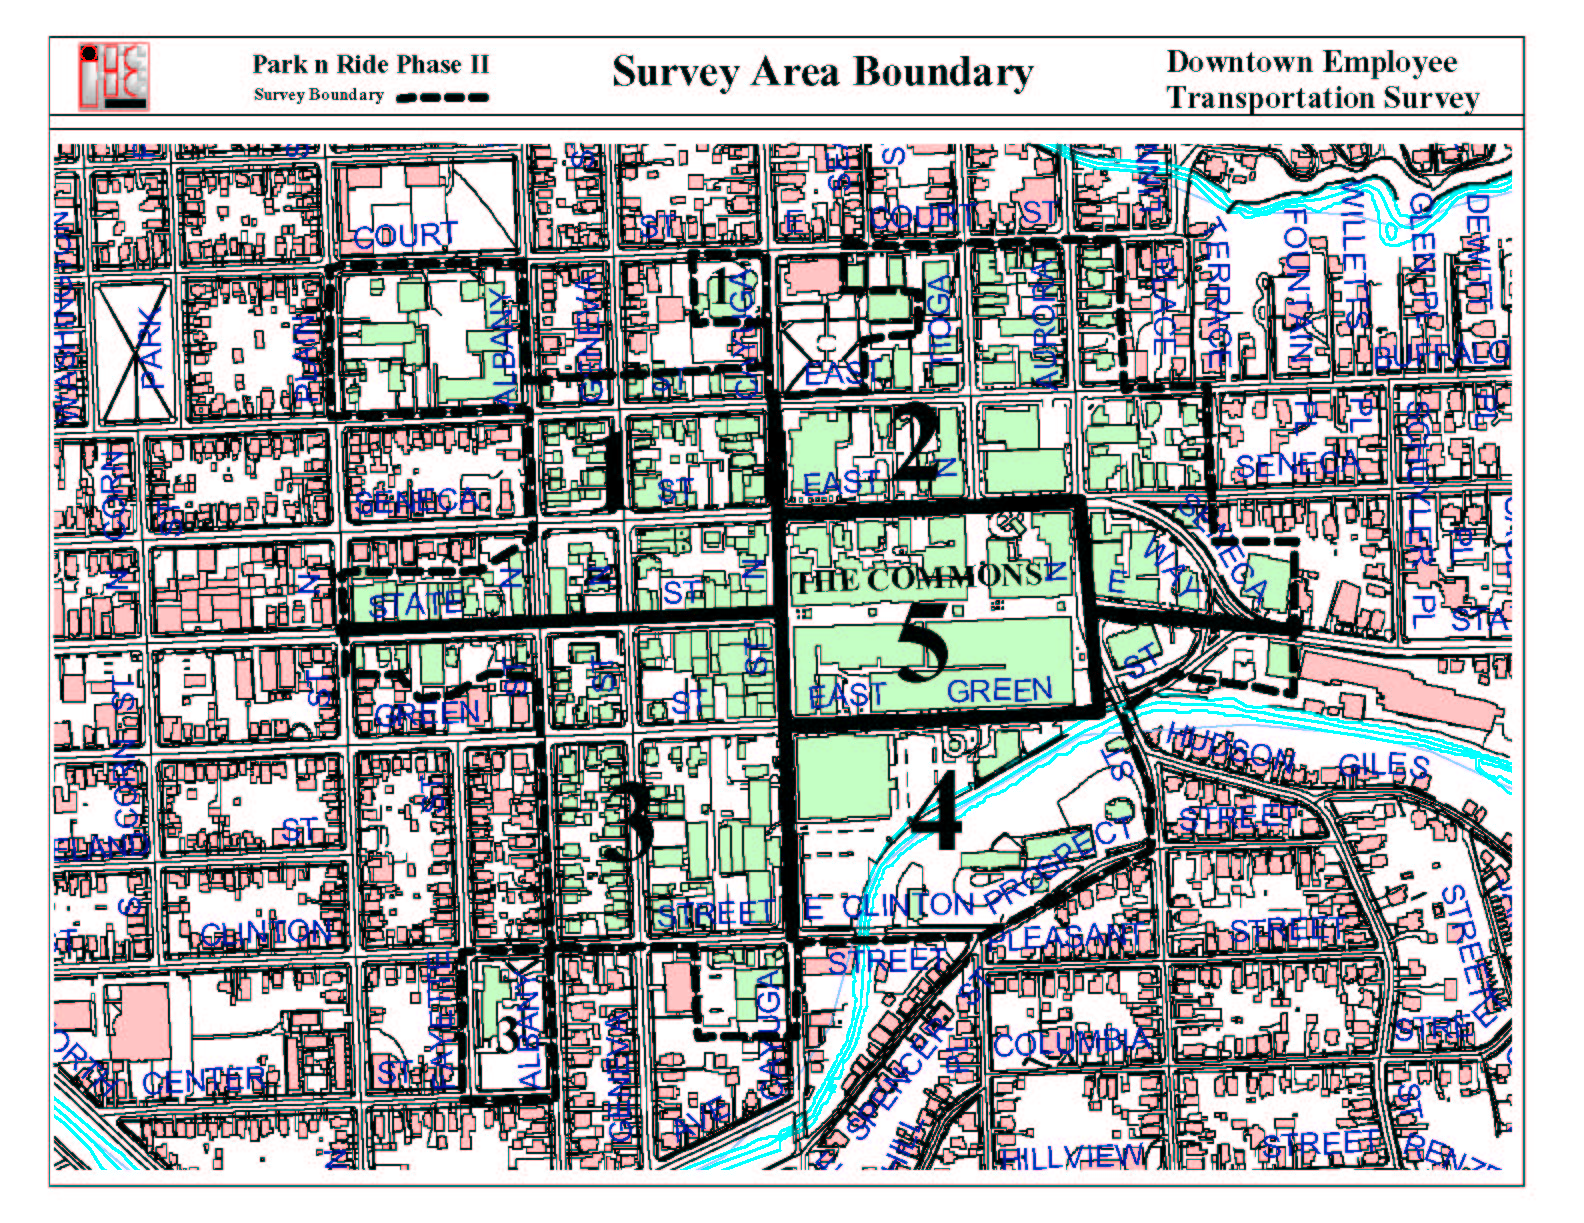 New york tompkins county ithaca 14850 - Click Here To See The Survey Area Boundary